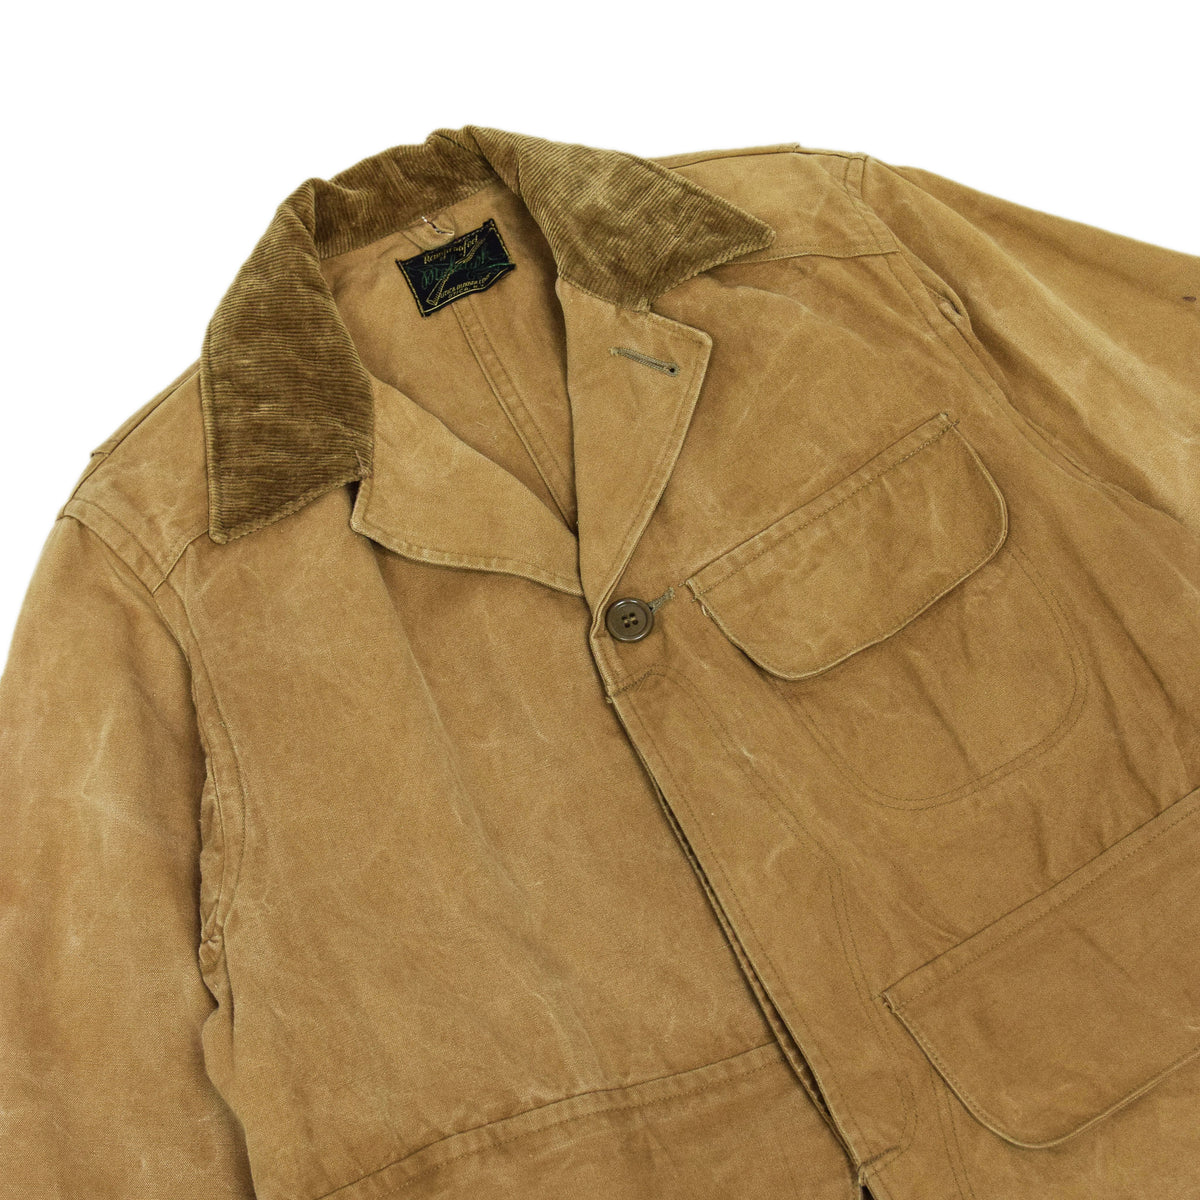 Vintage 1930s Mohawk Duxbak NY Hunting Tan Canvas Shooting Field Jacket S / M CHEST